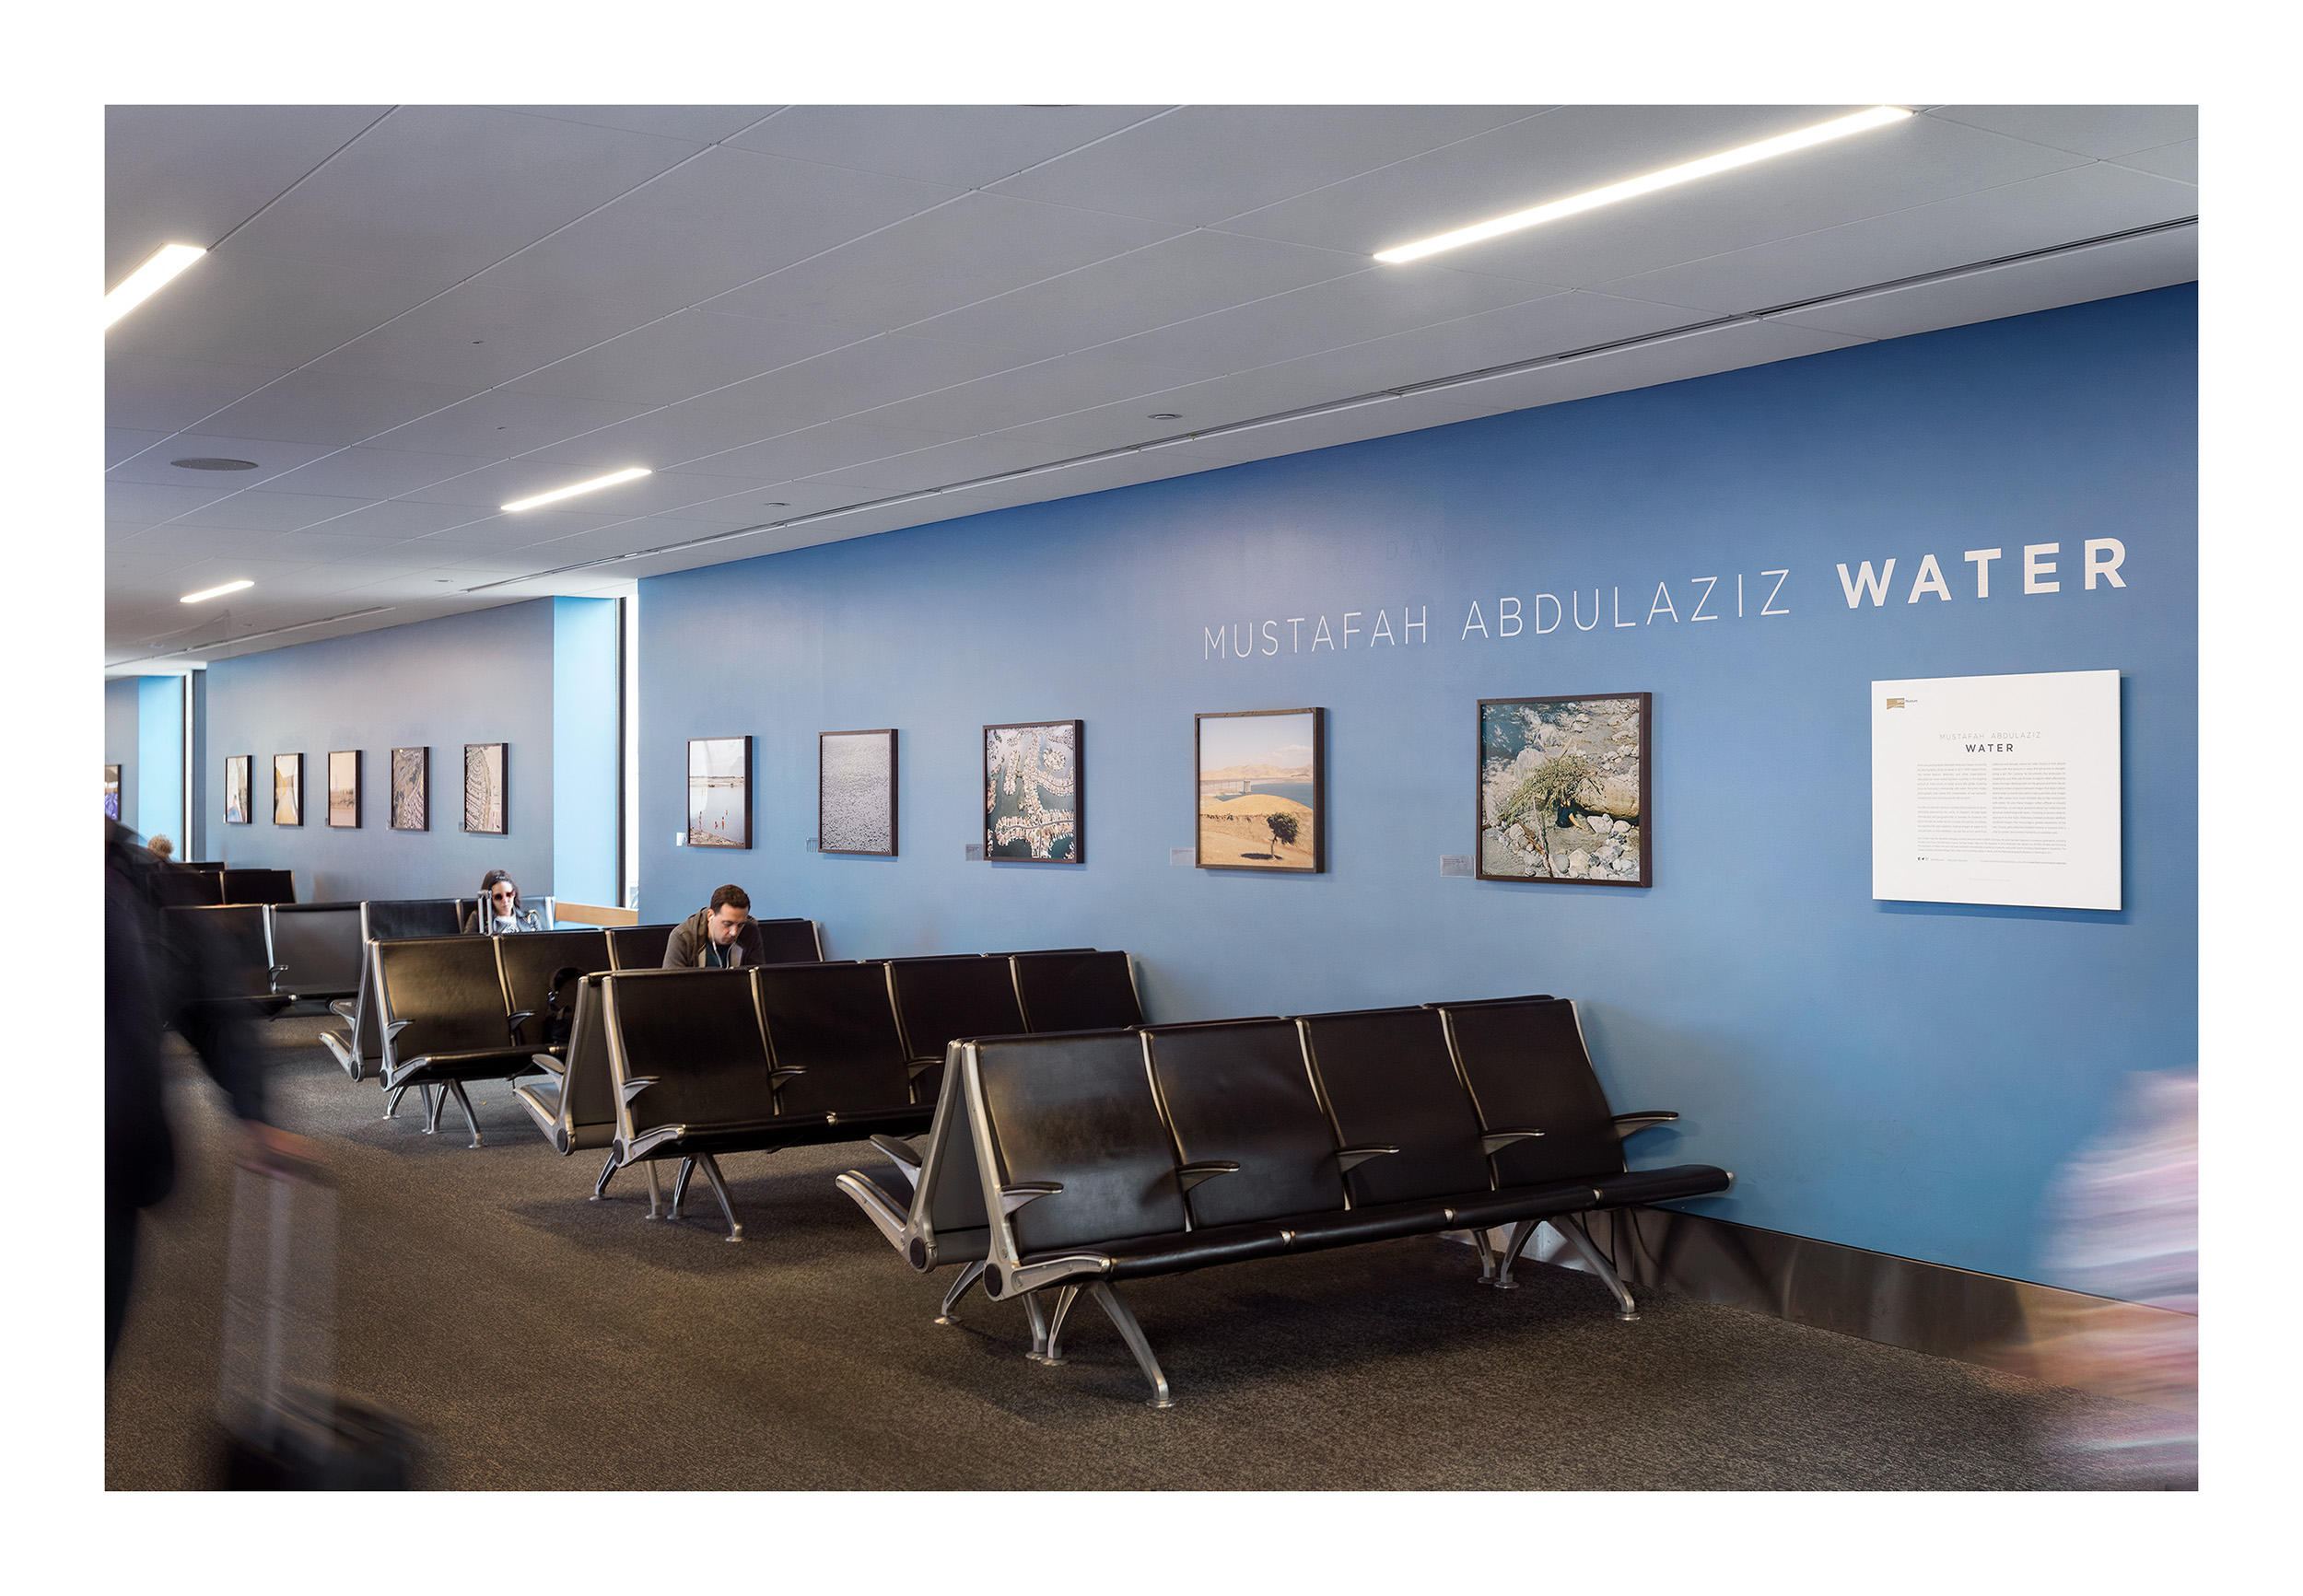 Water: California , August 7 to October 31, 2017, San Francisco International Airport, San Francisco, USA.